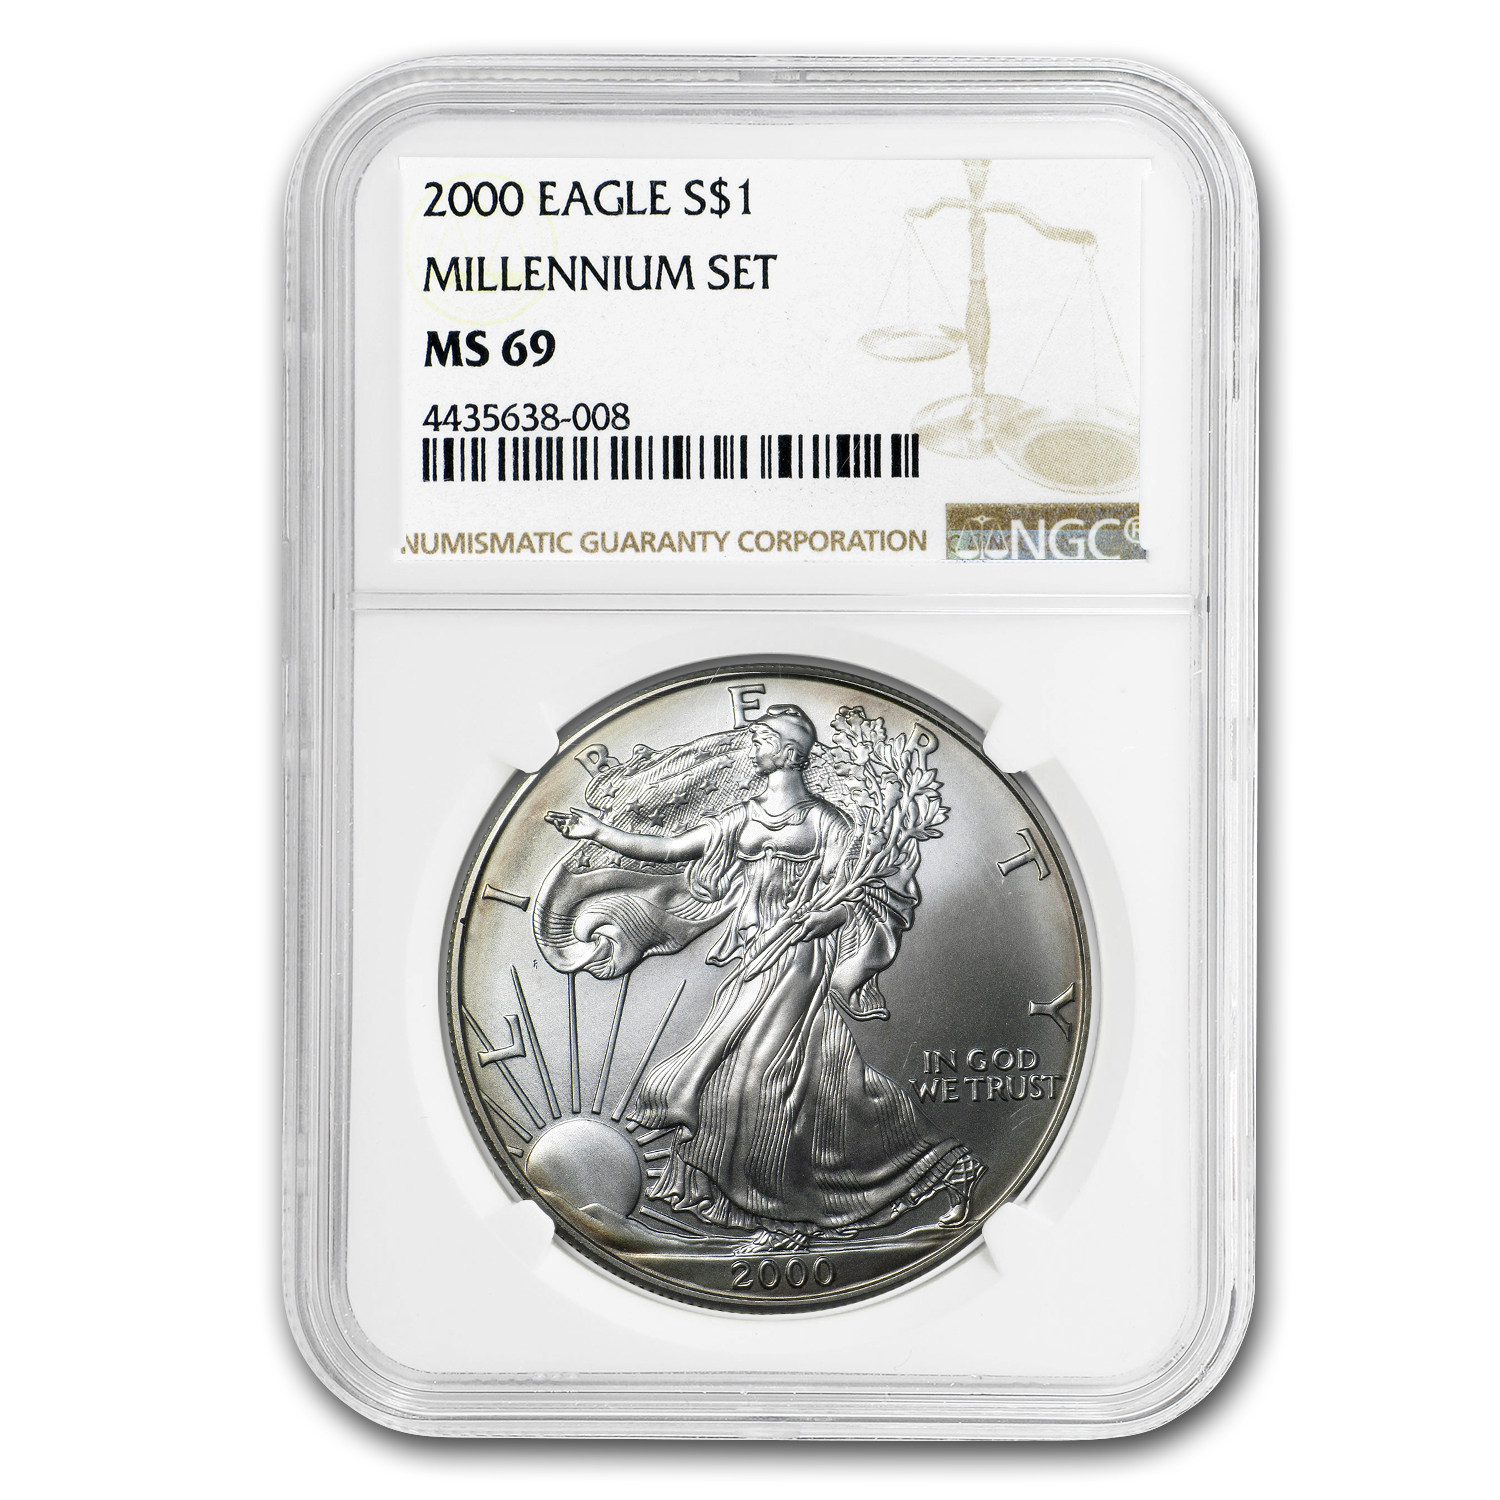 2000 Silver American Eagle MS-69 NGC (Millennium)